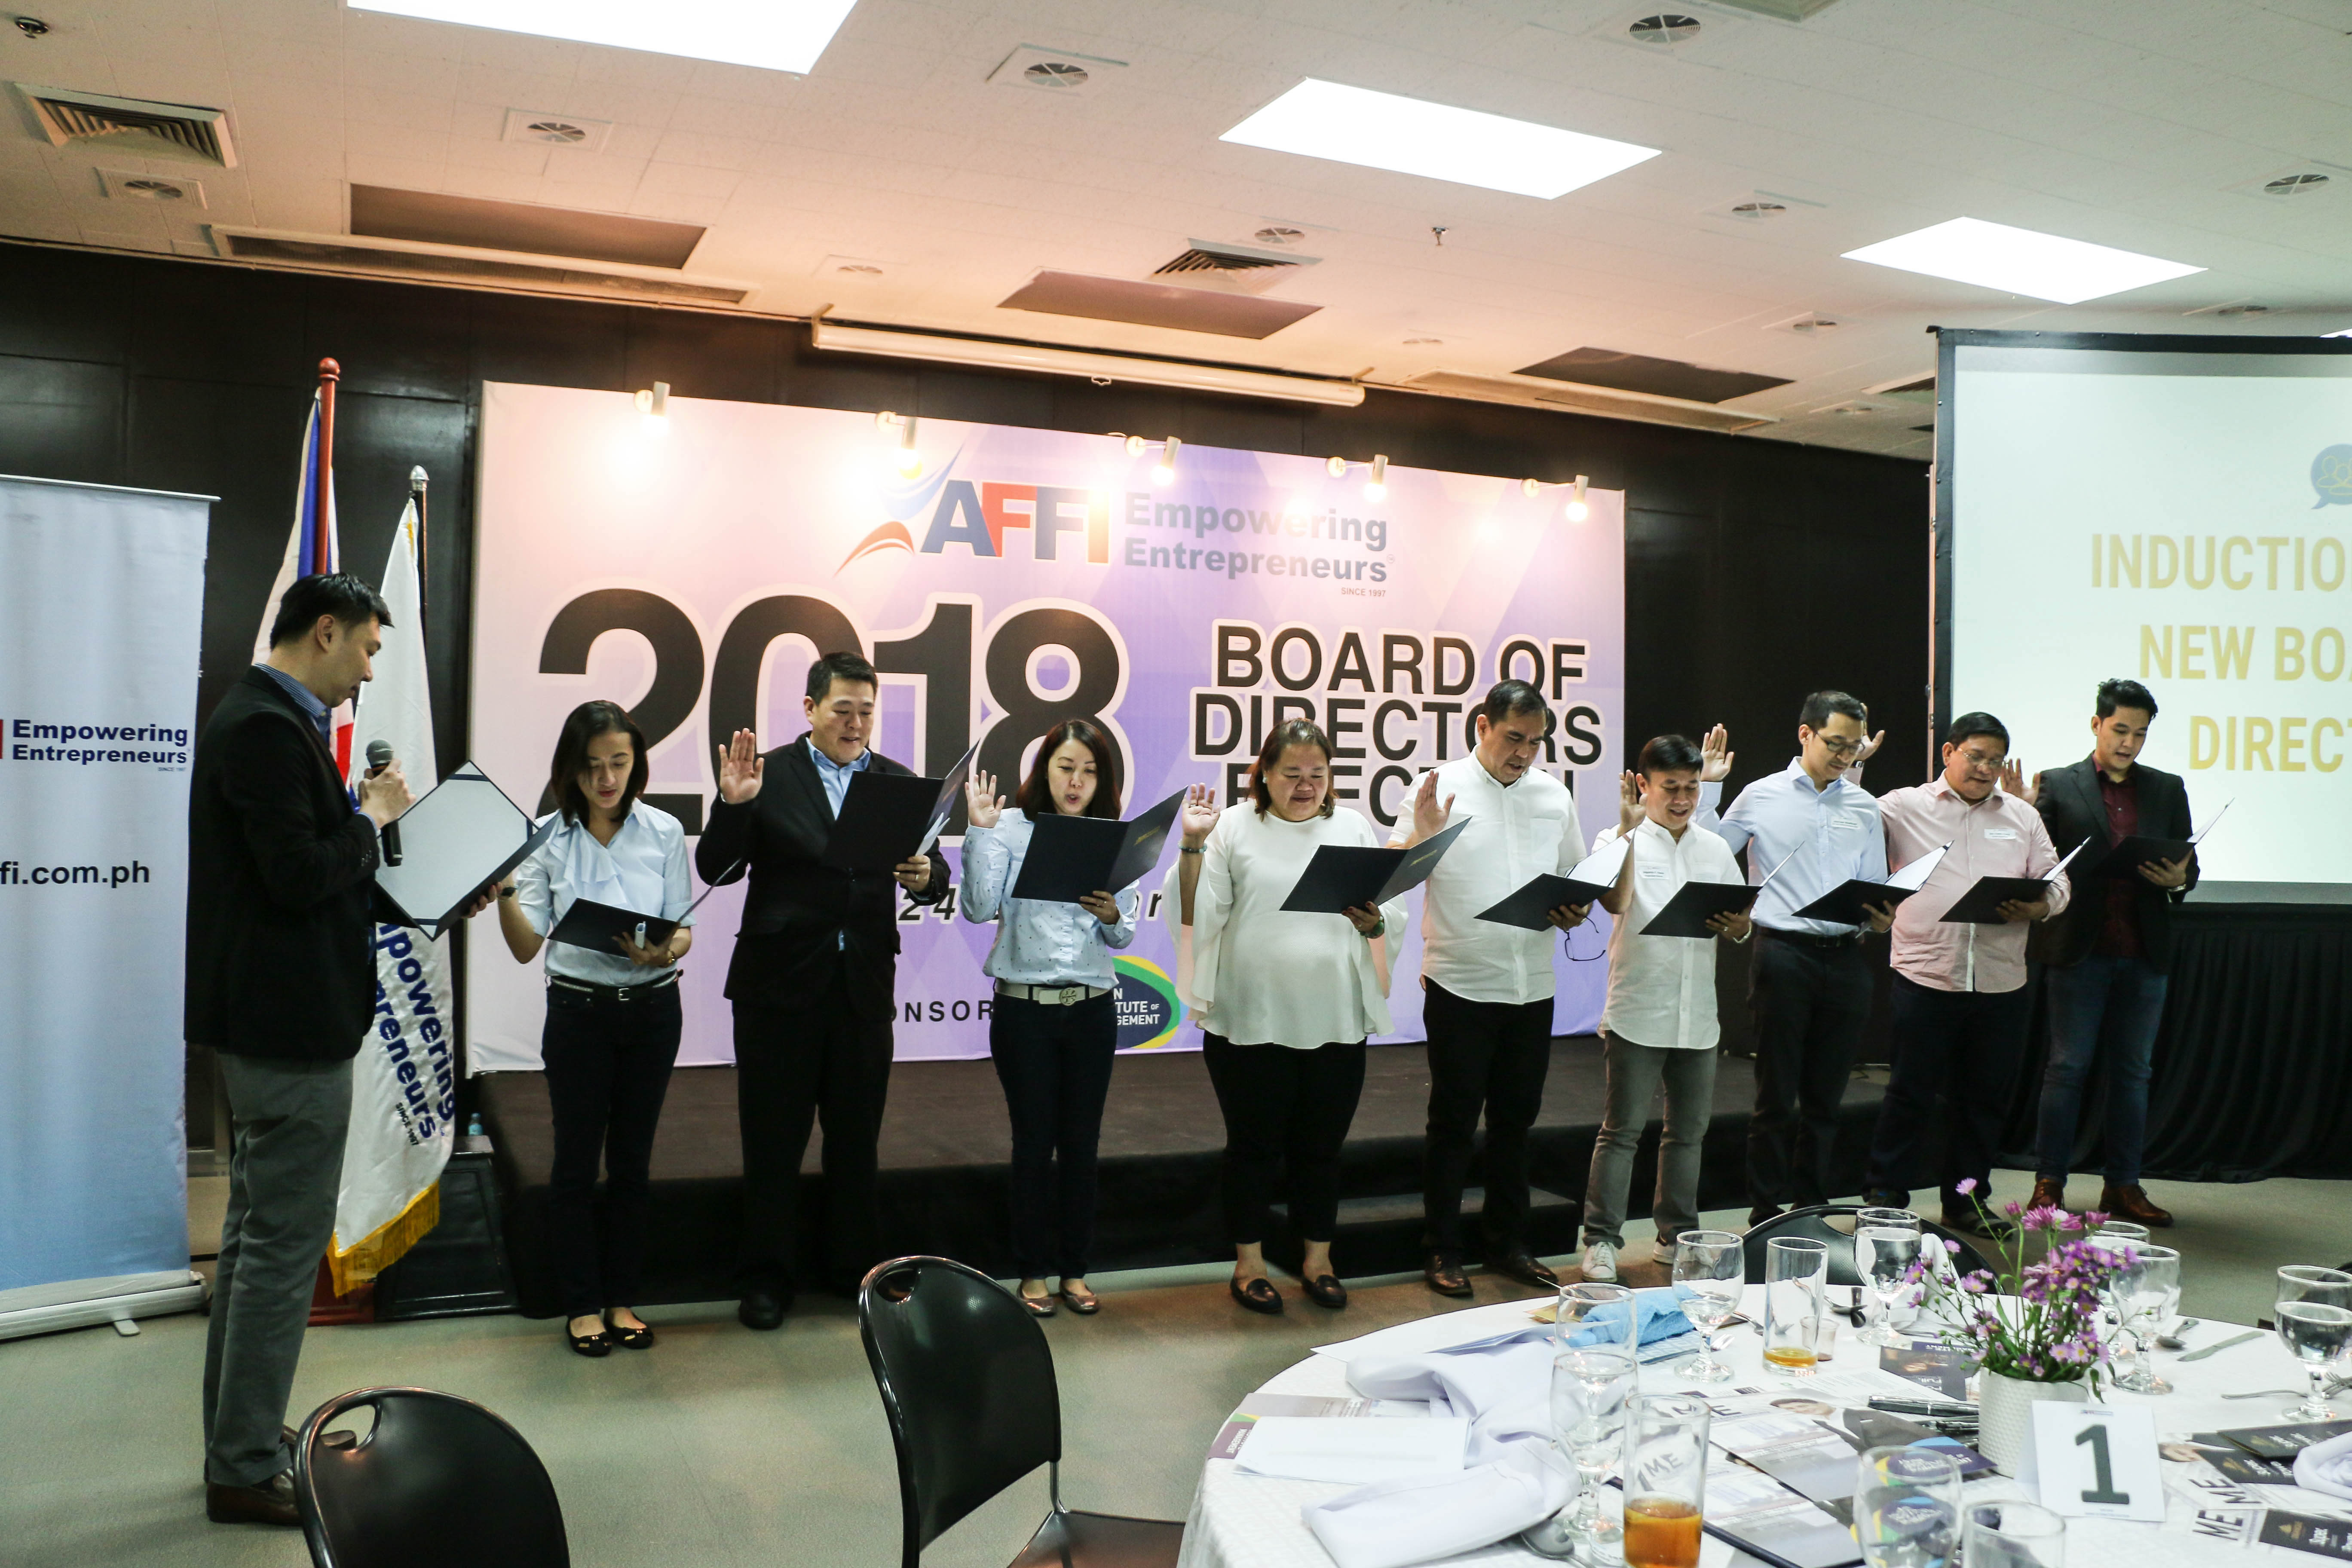 Outgoing AFFI President John Chung inducts the 2018 Board of Directors